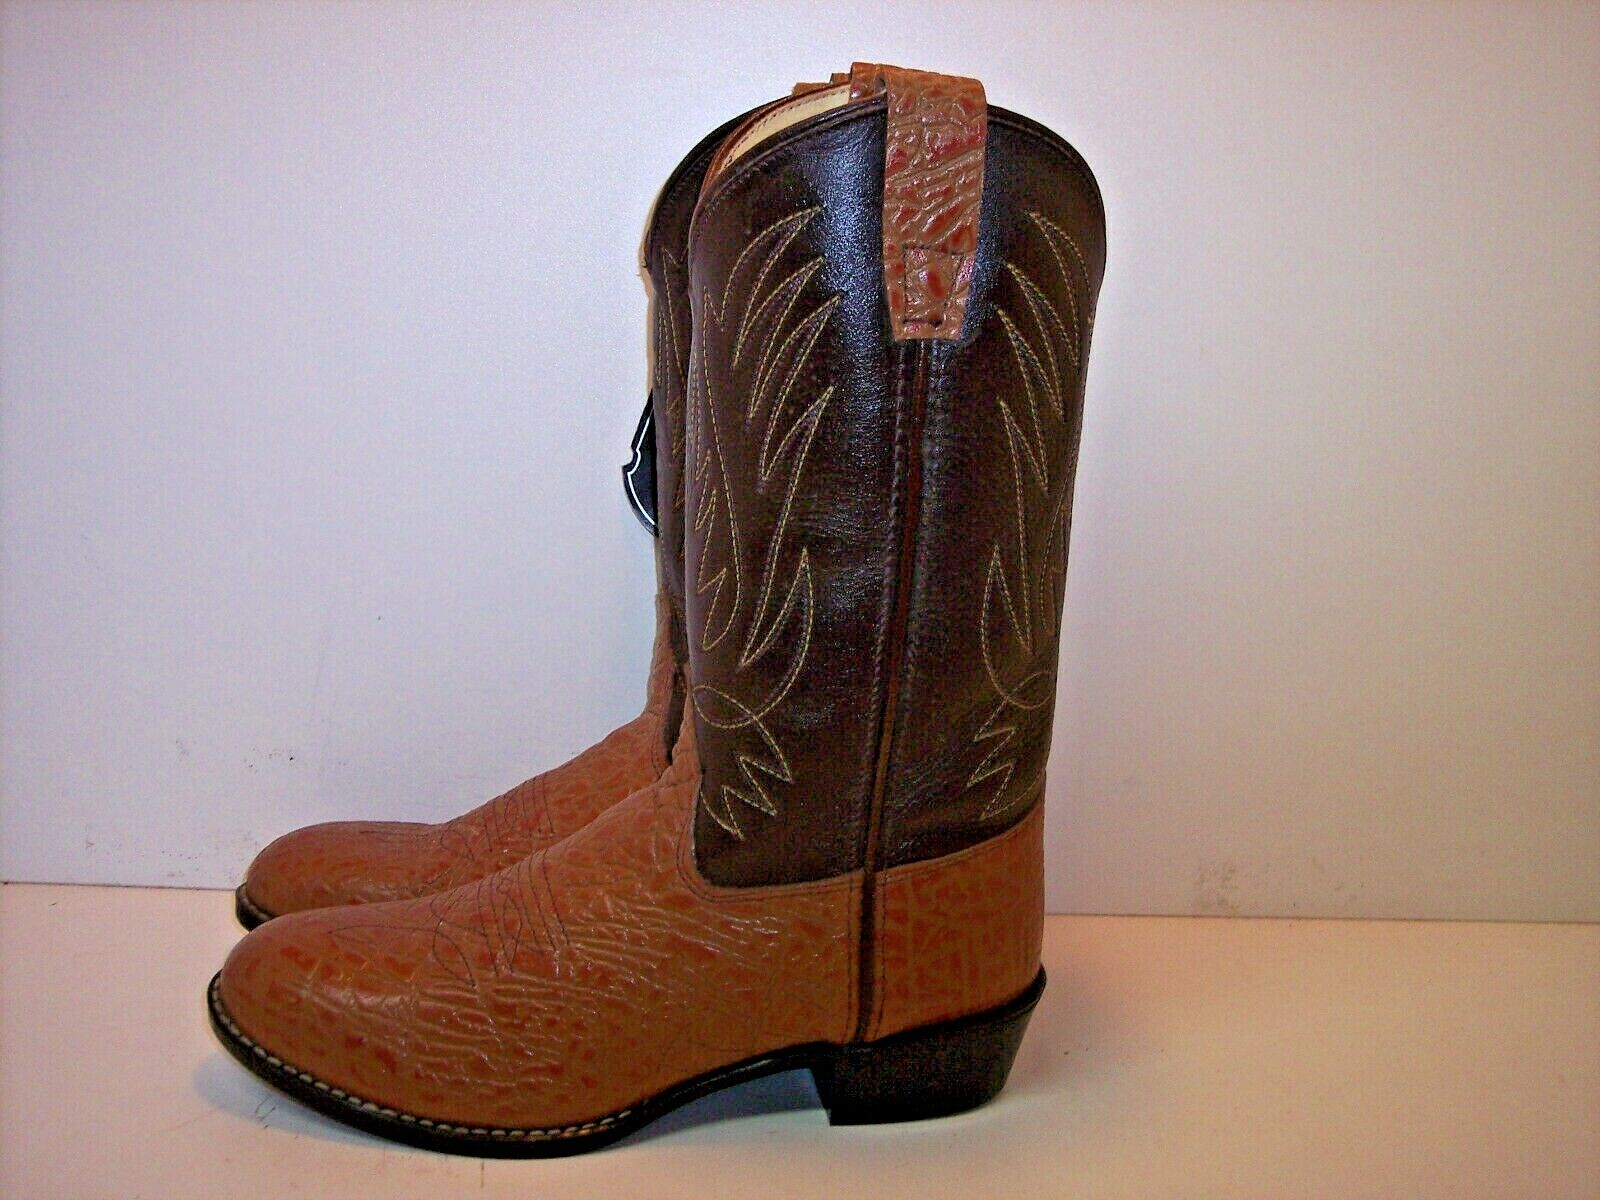 JAMA Tan & Brown Leather Exotic Look Western Boot Women's Size 5.5